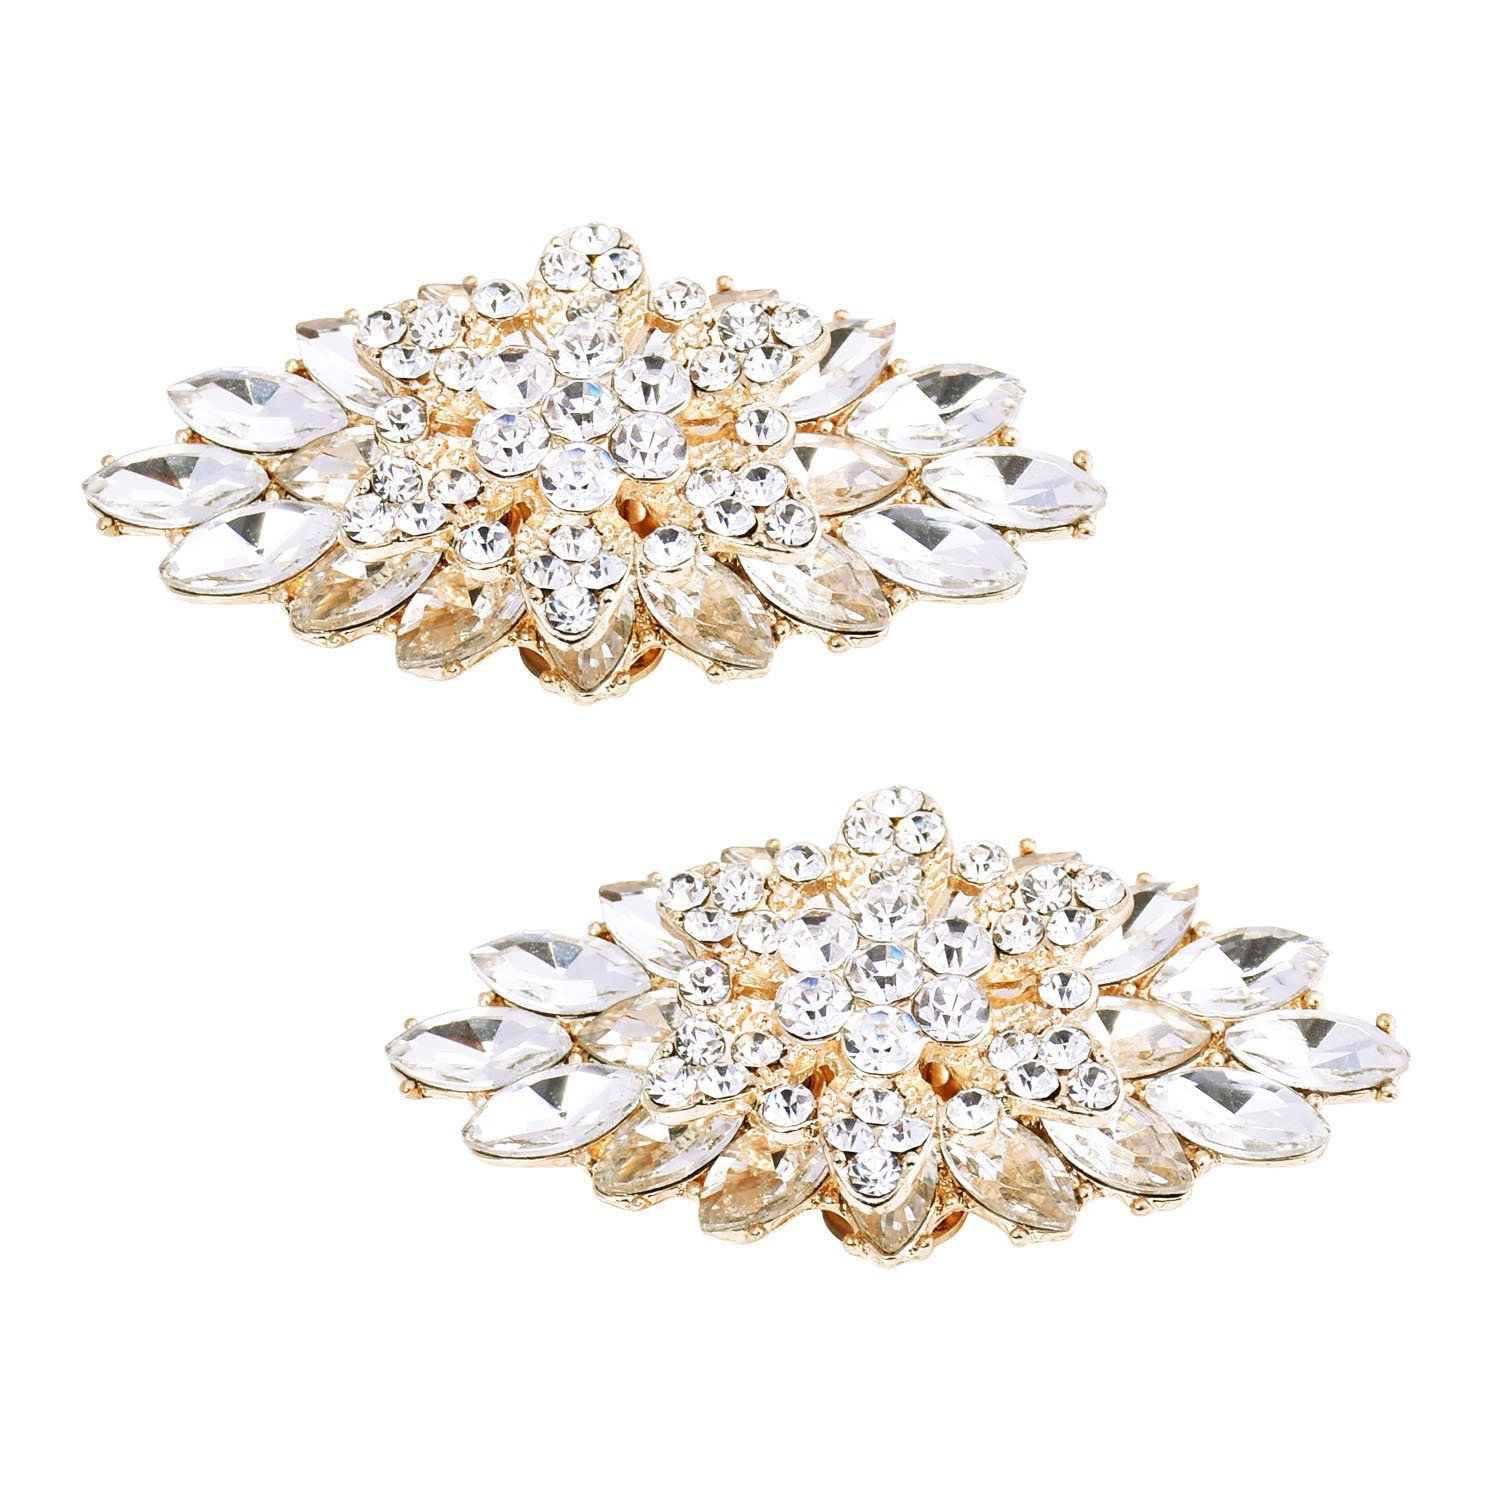 ElegantPark BD 2 Pcs Shoe Clips Double Layers Rhinestones Wedding Party Decoration Gold